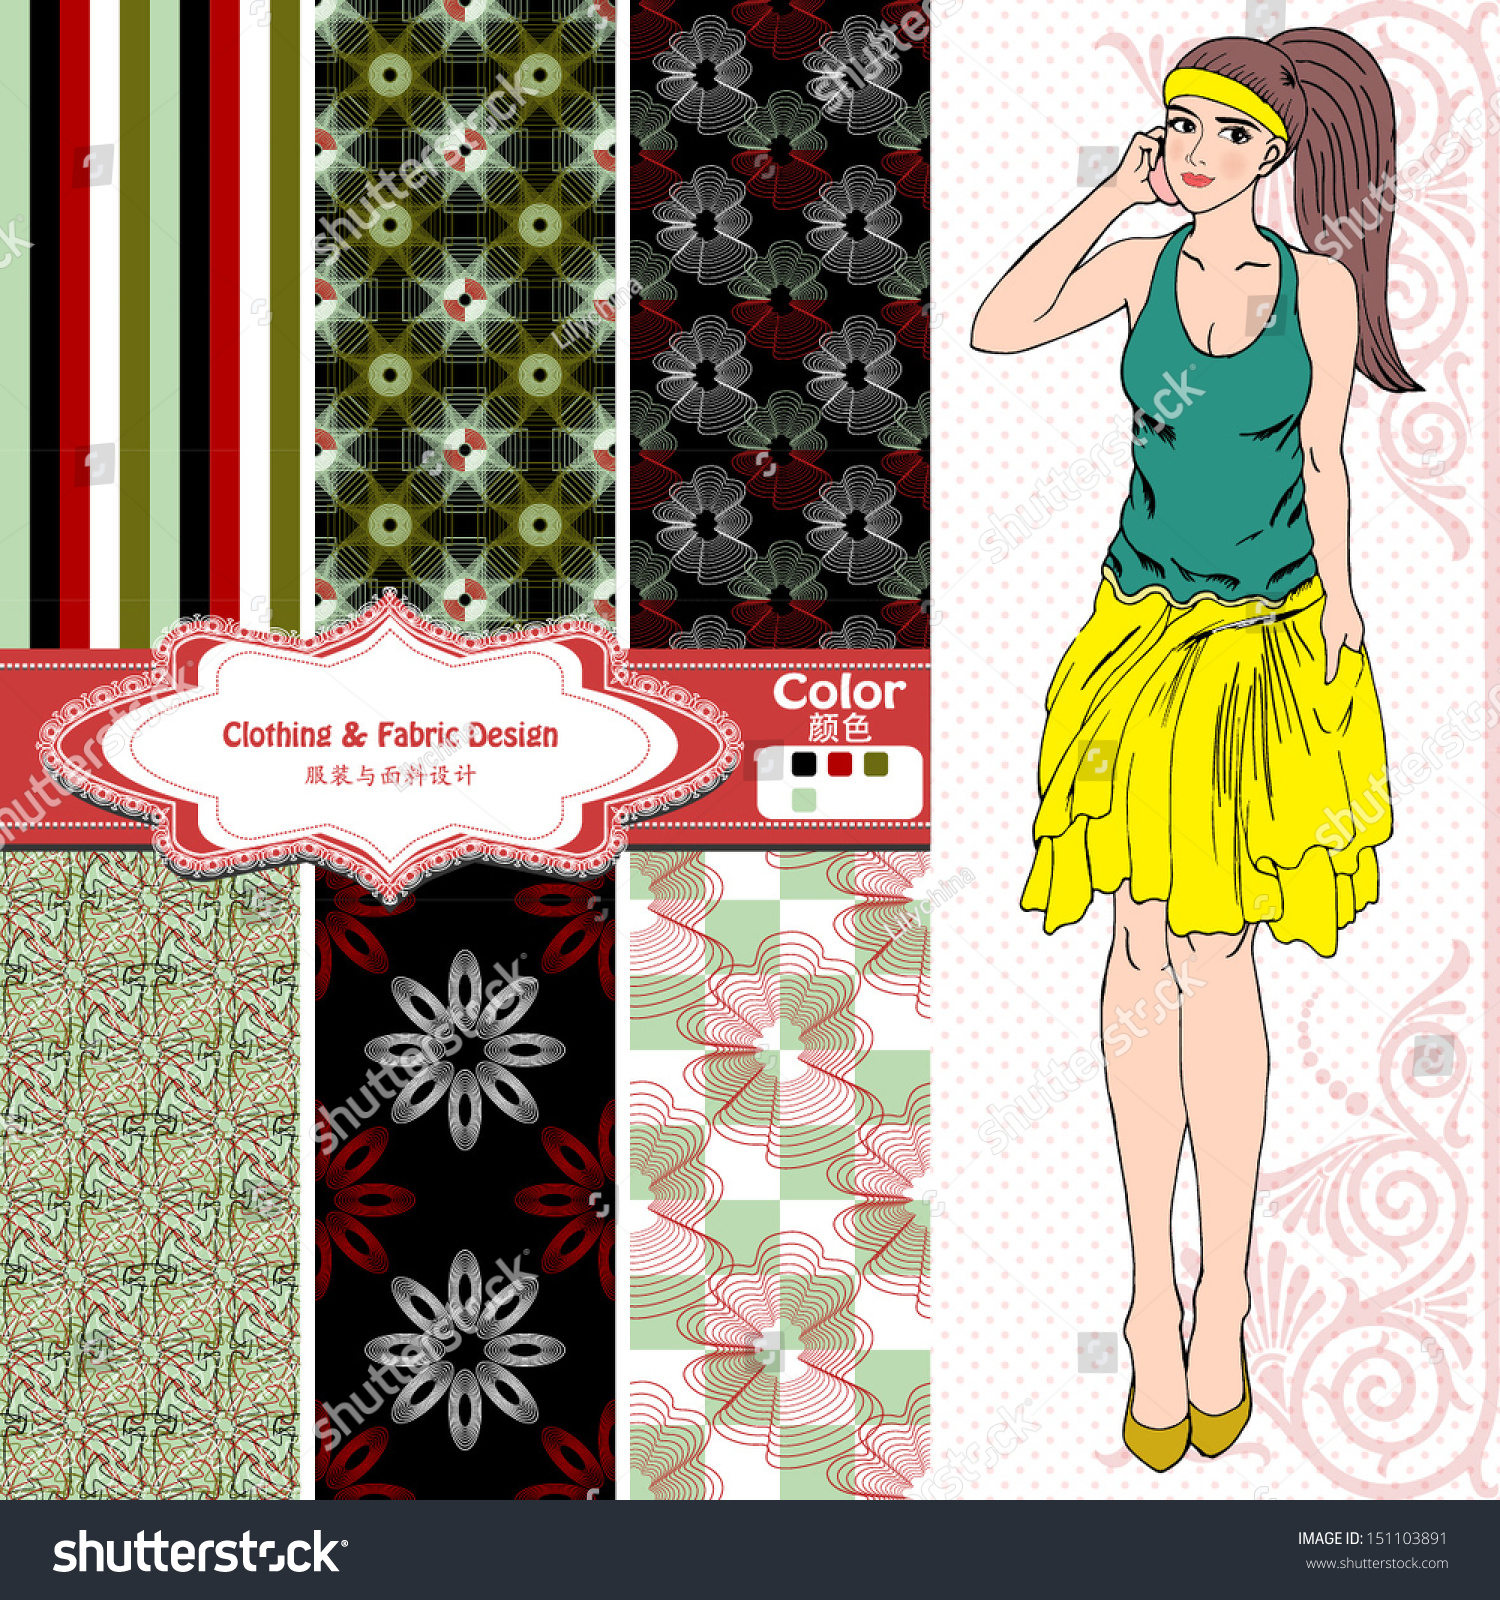 Wallpaper Wrapper Fabric Nice Fashion Girl Stock Vector Royalty Free 151103891